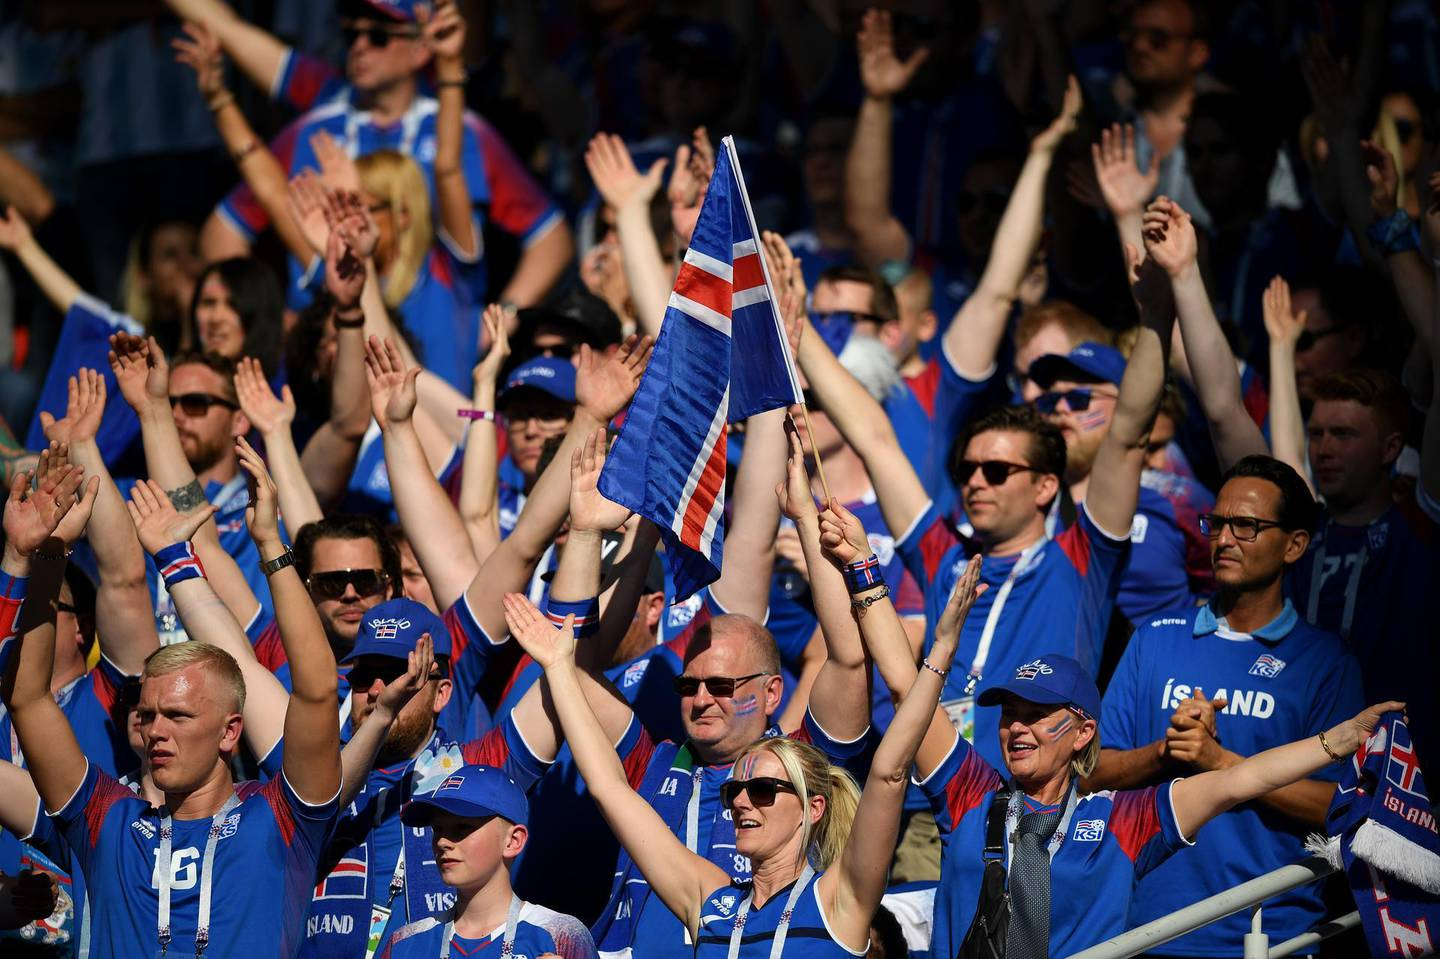 MOSCOW, RUSSIA - JUNE 16:  Iceland fans show their support during the 2018 FIFA World Cup Russia group D match between Argentina and Iceland at Spartak Stadium on June 16, 2018 in Moscow, Russia.  (Photo by Matthias Hangst/Getty Images)